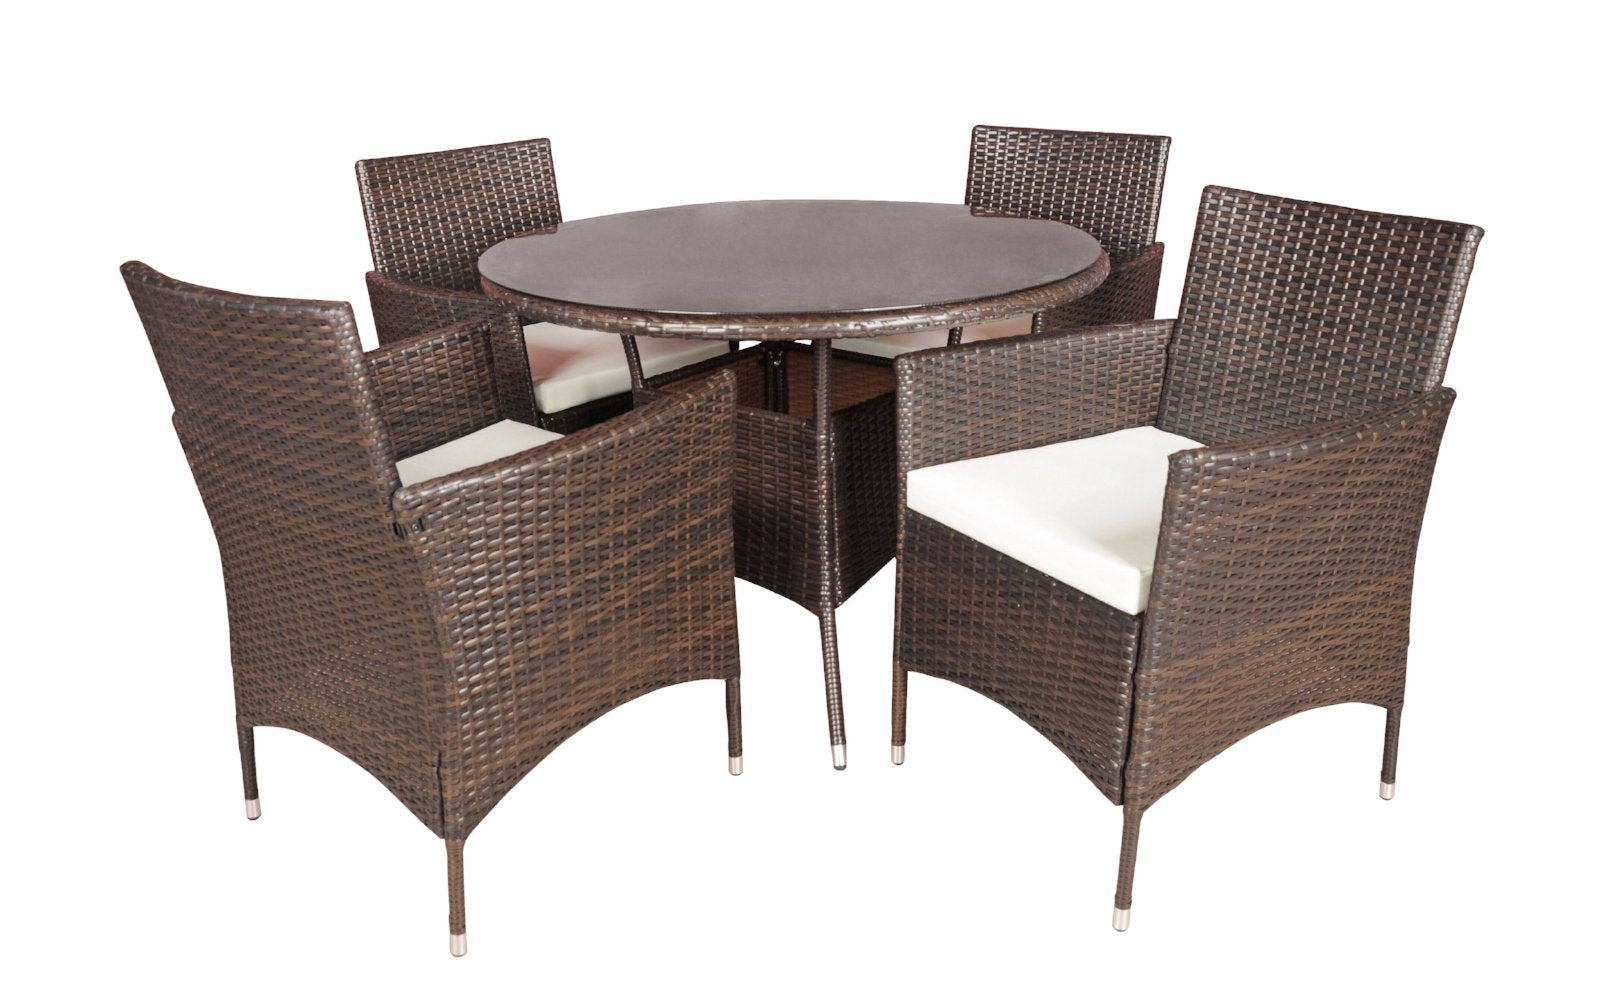 Phenomenal Malibu Classic Rattan Outdoor Dining Table And 4 Chairs Set Short Links Chair Design For Home Short Linksinfo